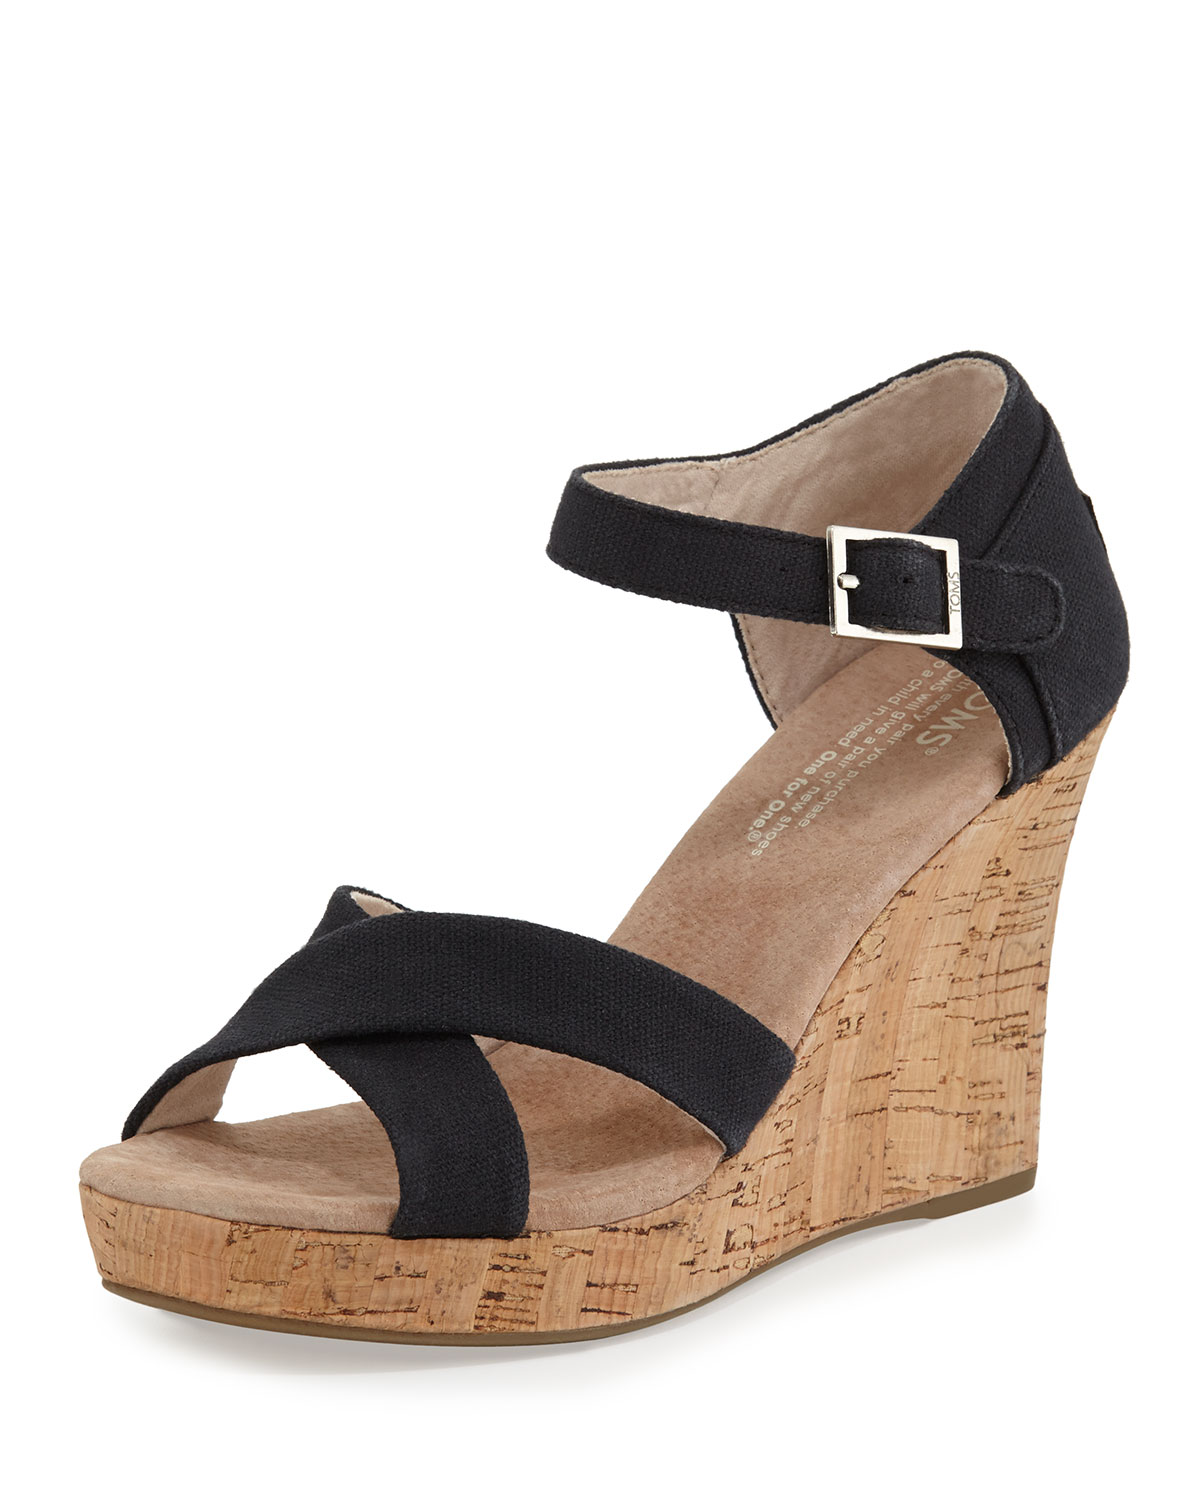 Black Strappy Wedge Canvas Toms- Black sandals